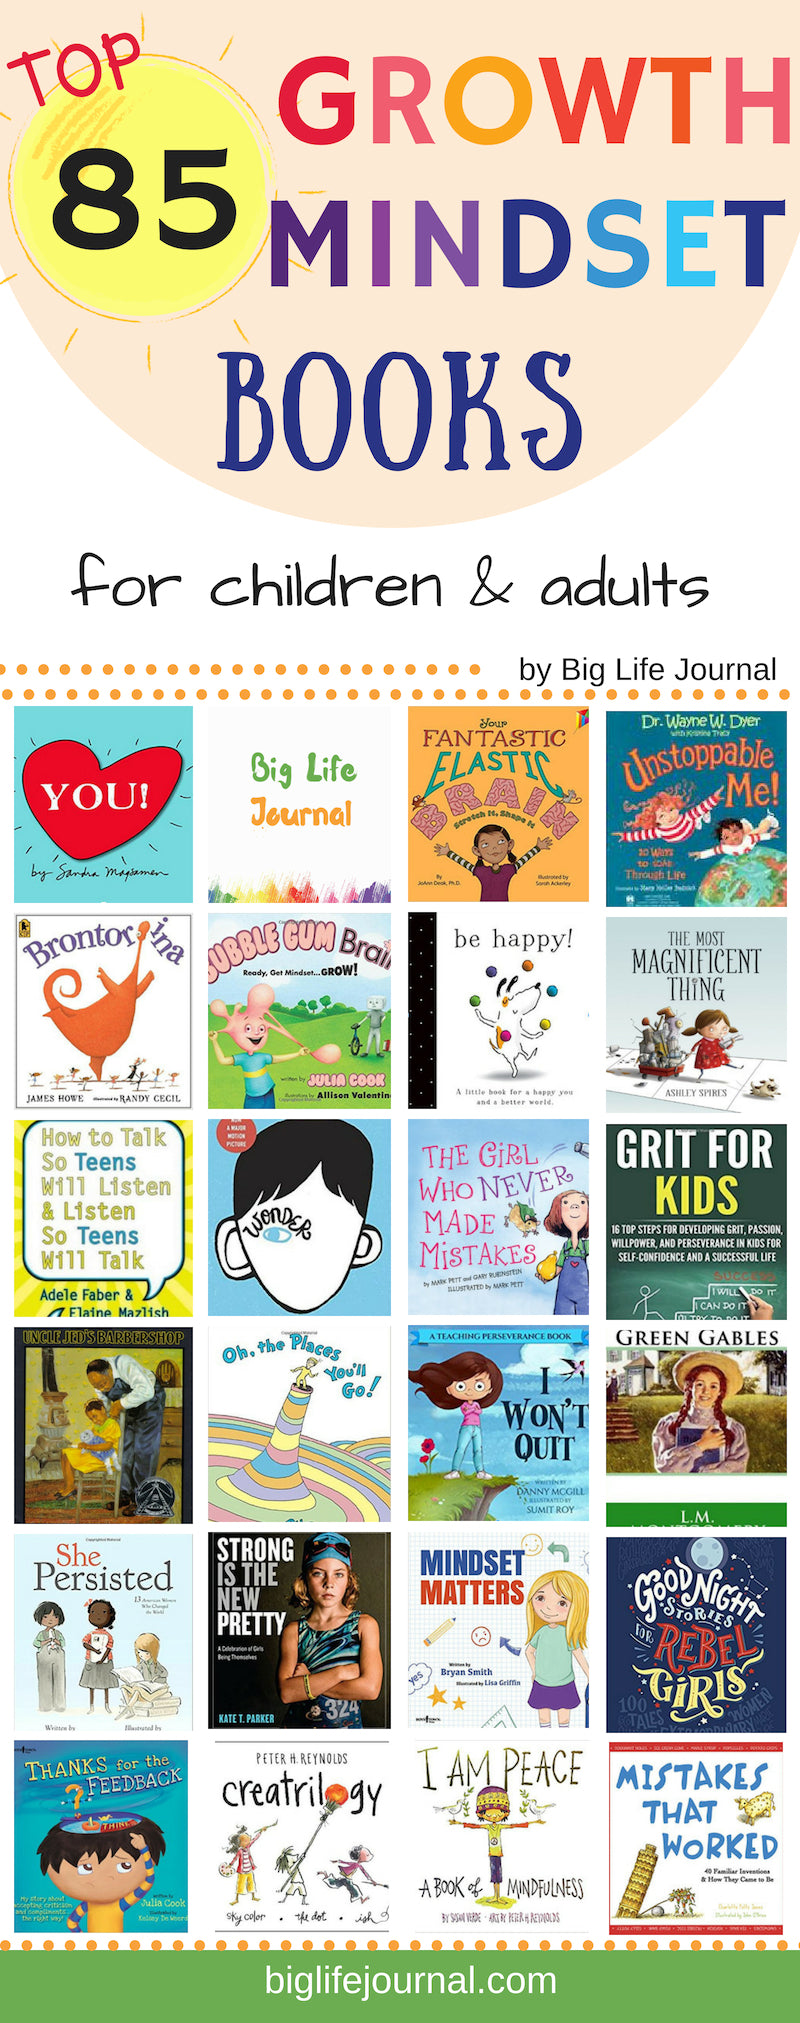 growth mindset books kids